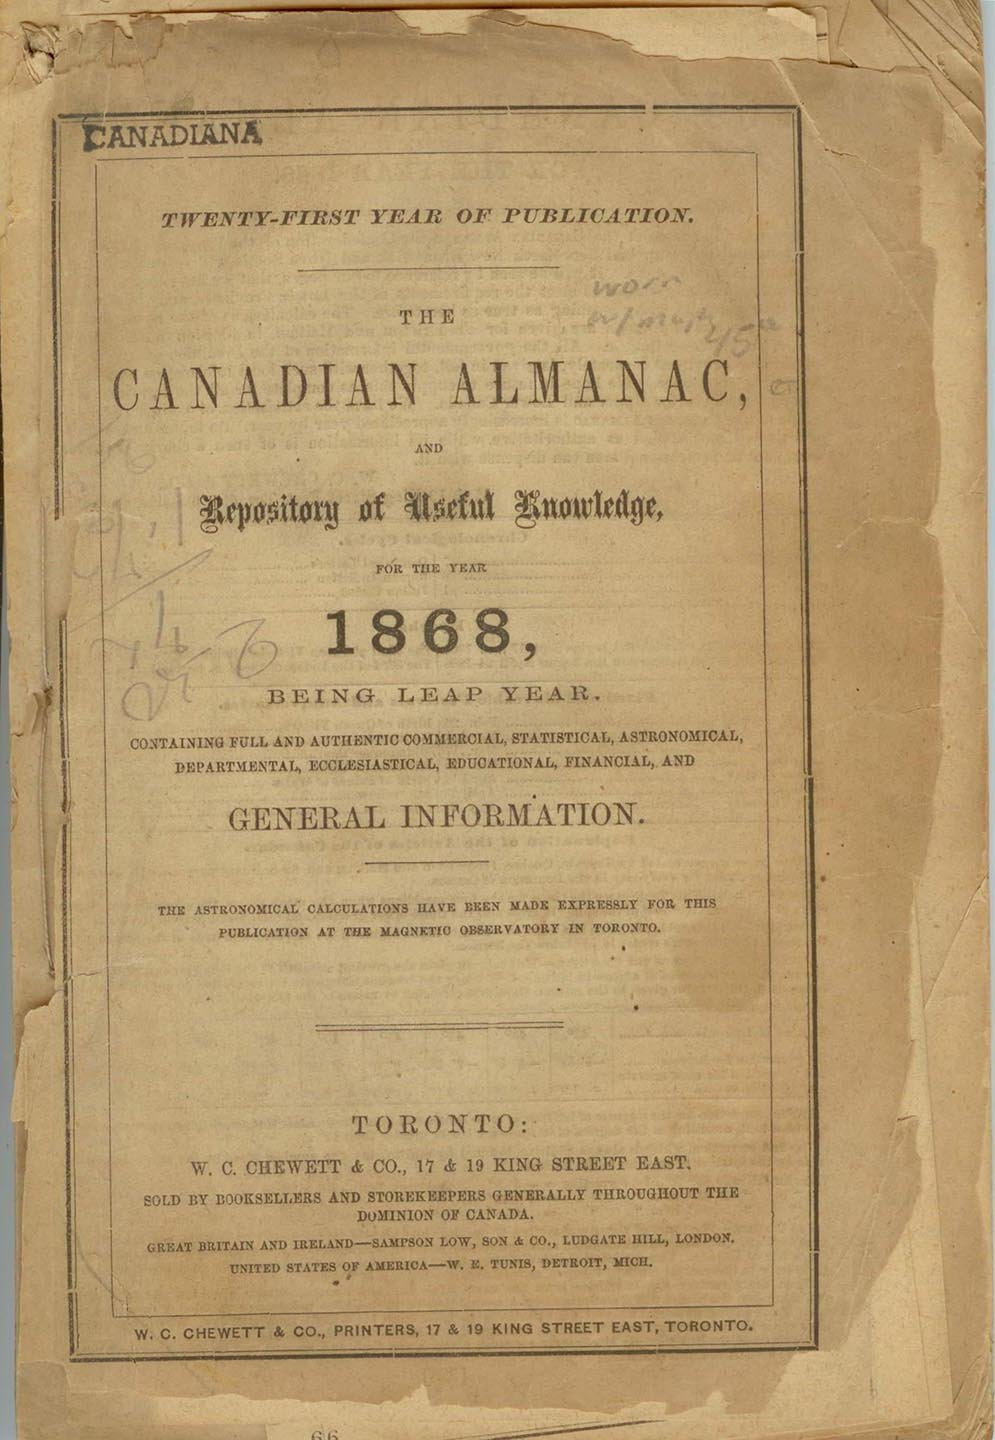 The Canadian Almanac, and Repository of Useful Knowledge for the Year 1868